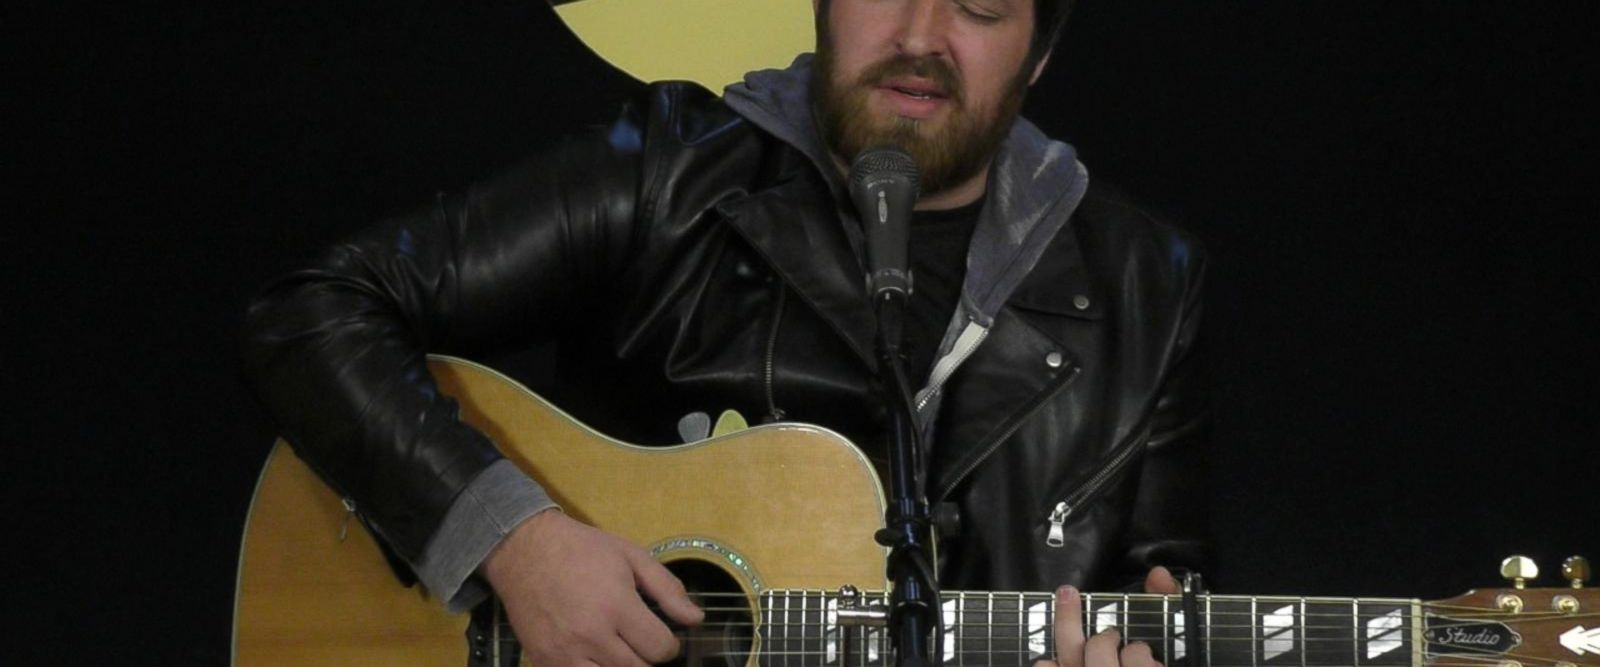 VIDEO: Singer-songwriter Lee DeWyze performs on 'Live From the Couch'